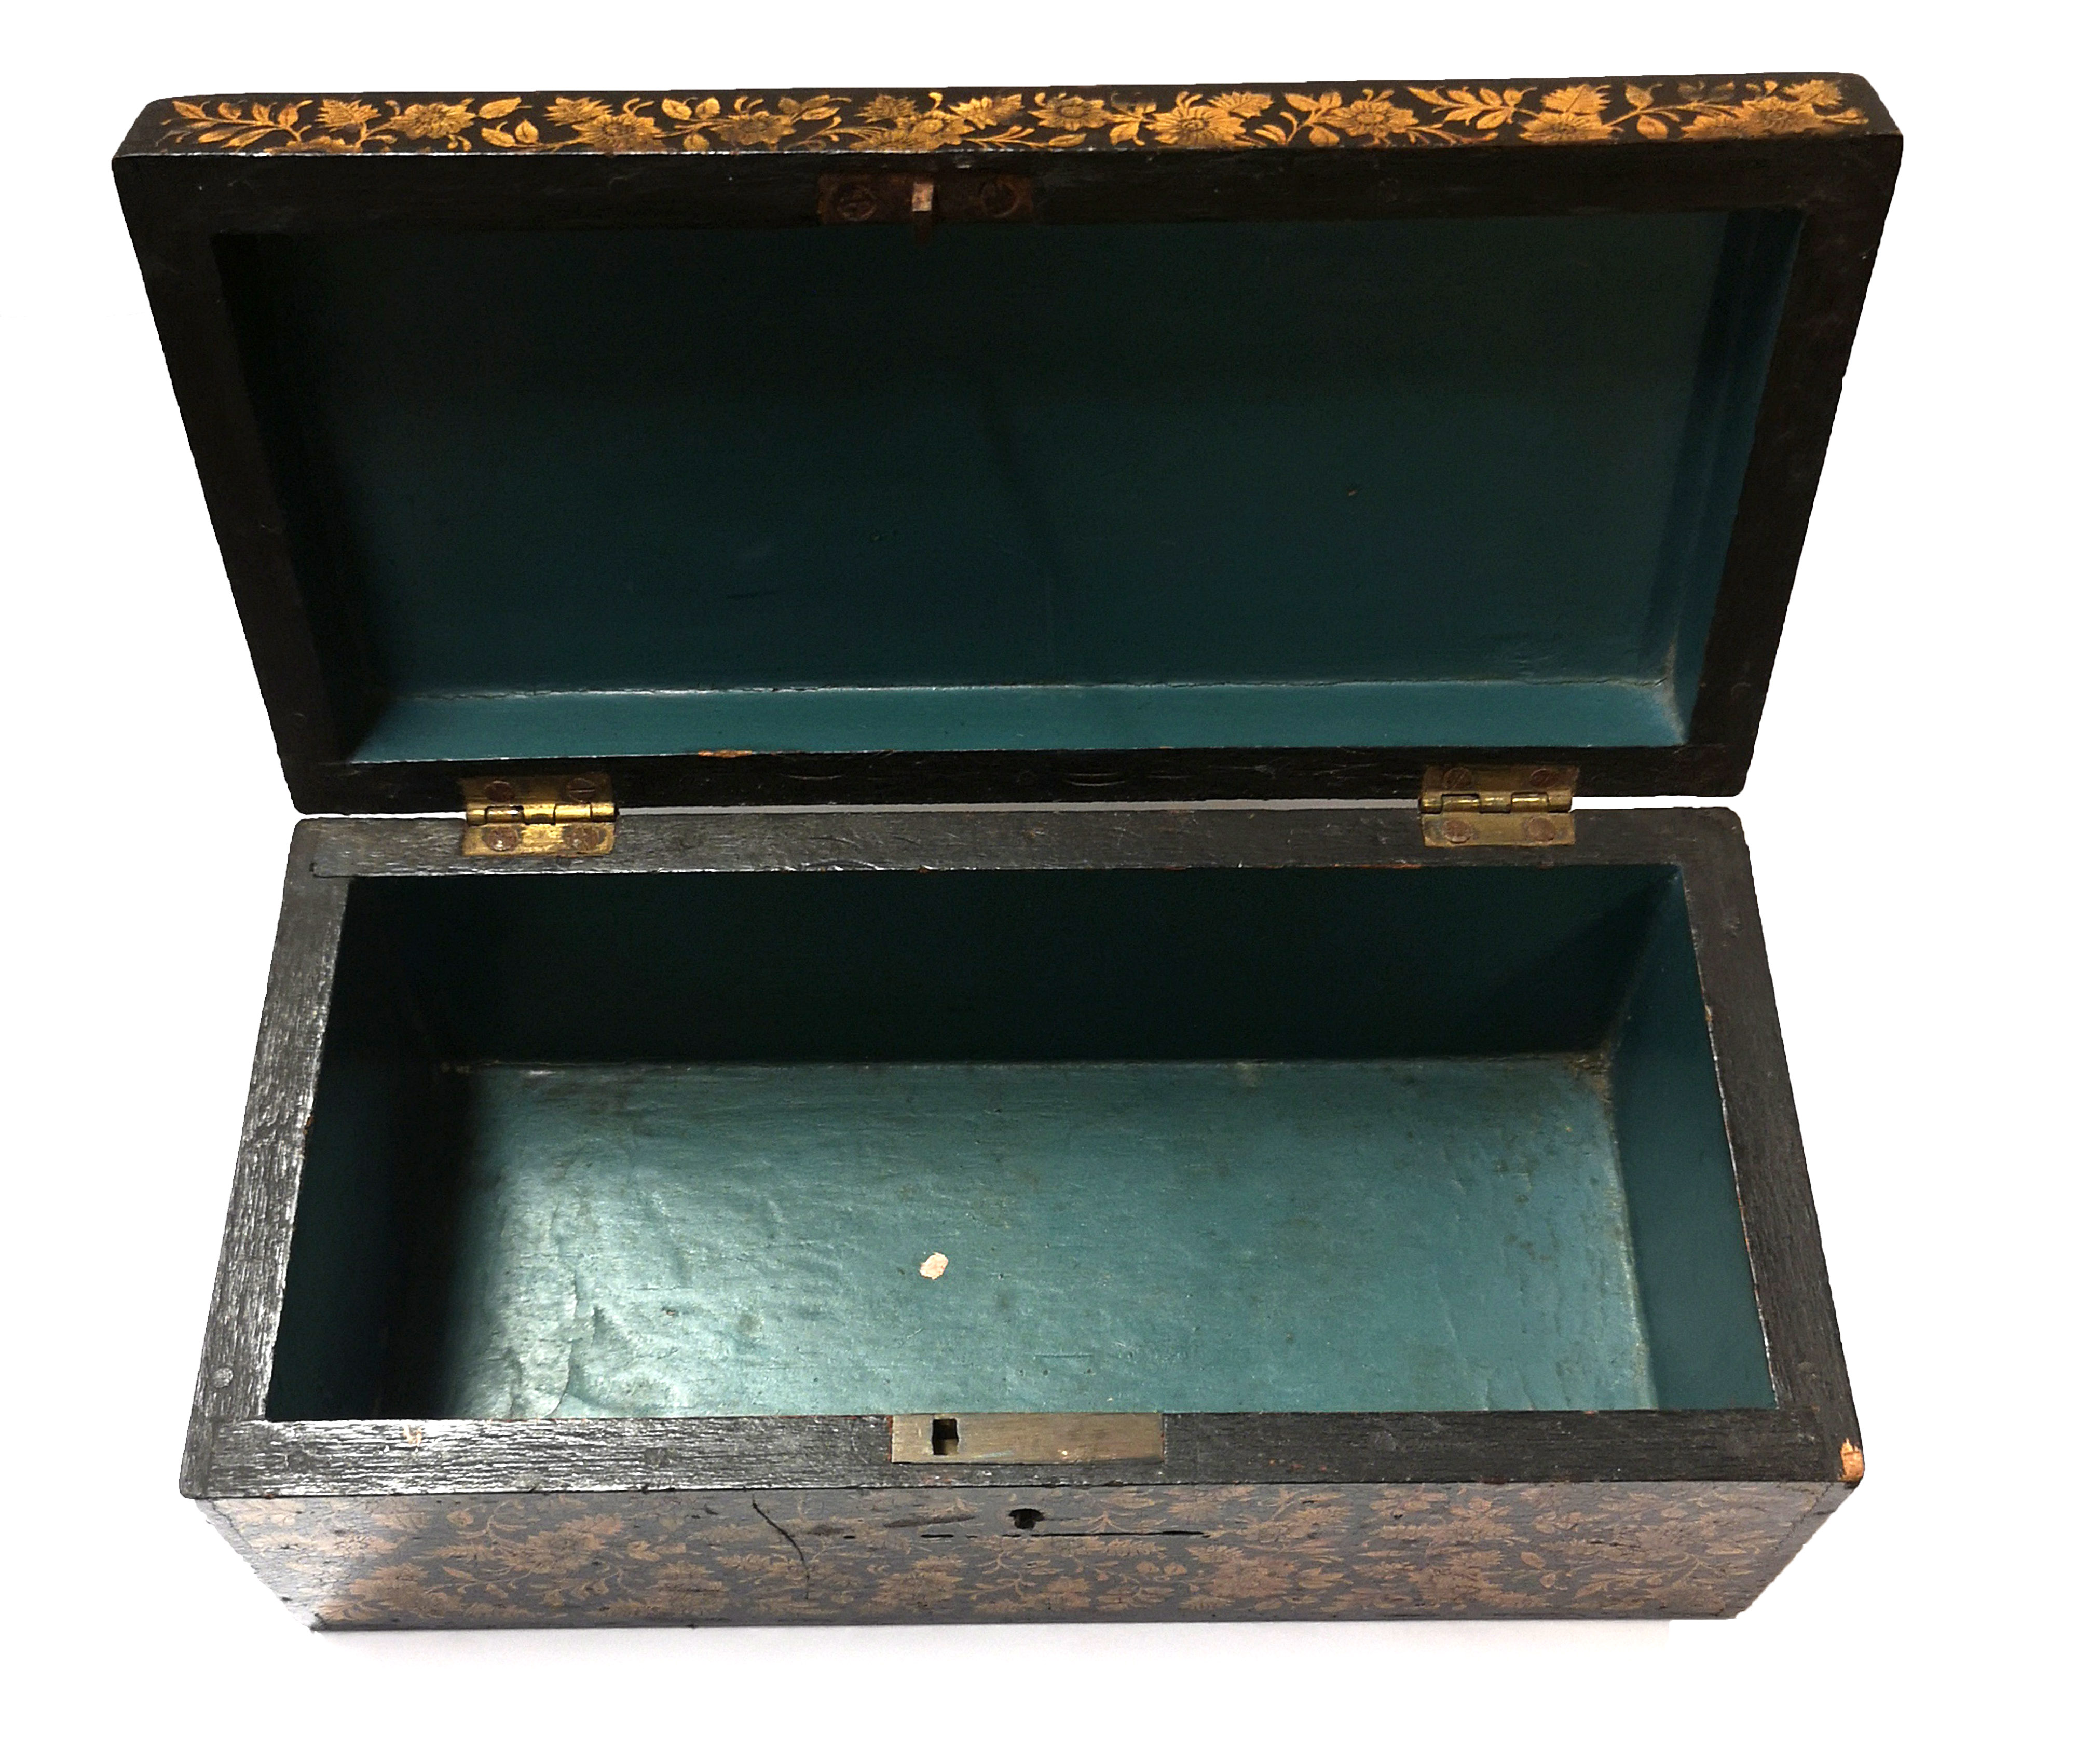 Lot 292 - A 19TH CENTURY PEN WORK BOX Heavily decorated with foliage. (19cm x 12cm x 10cm)